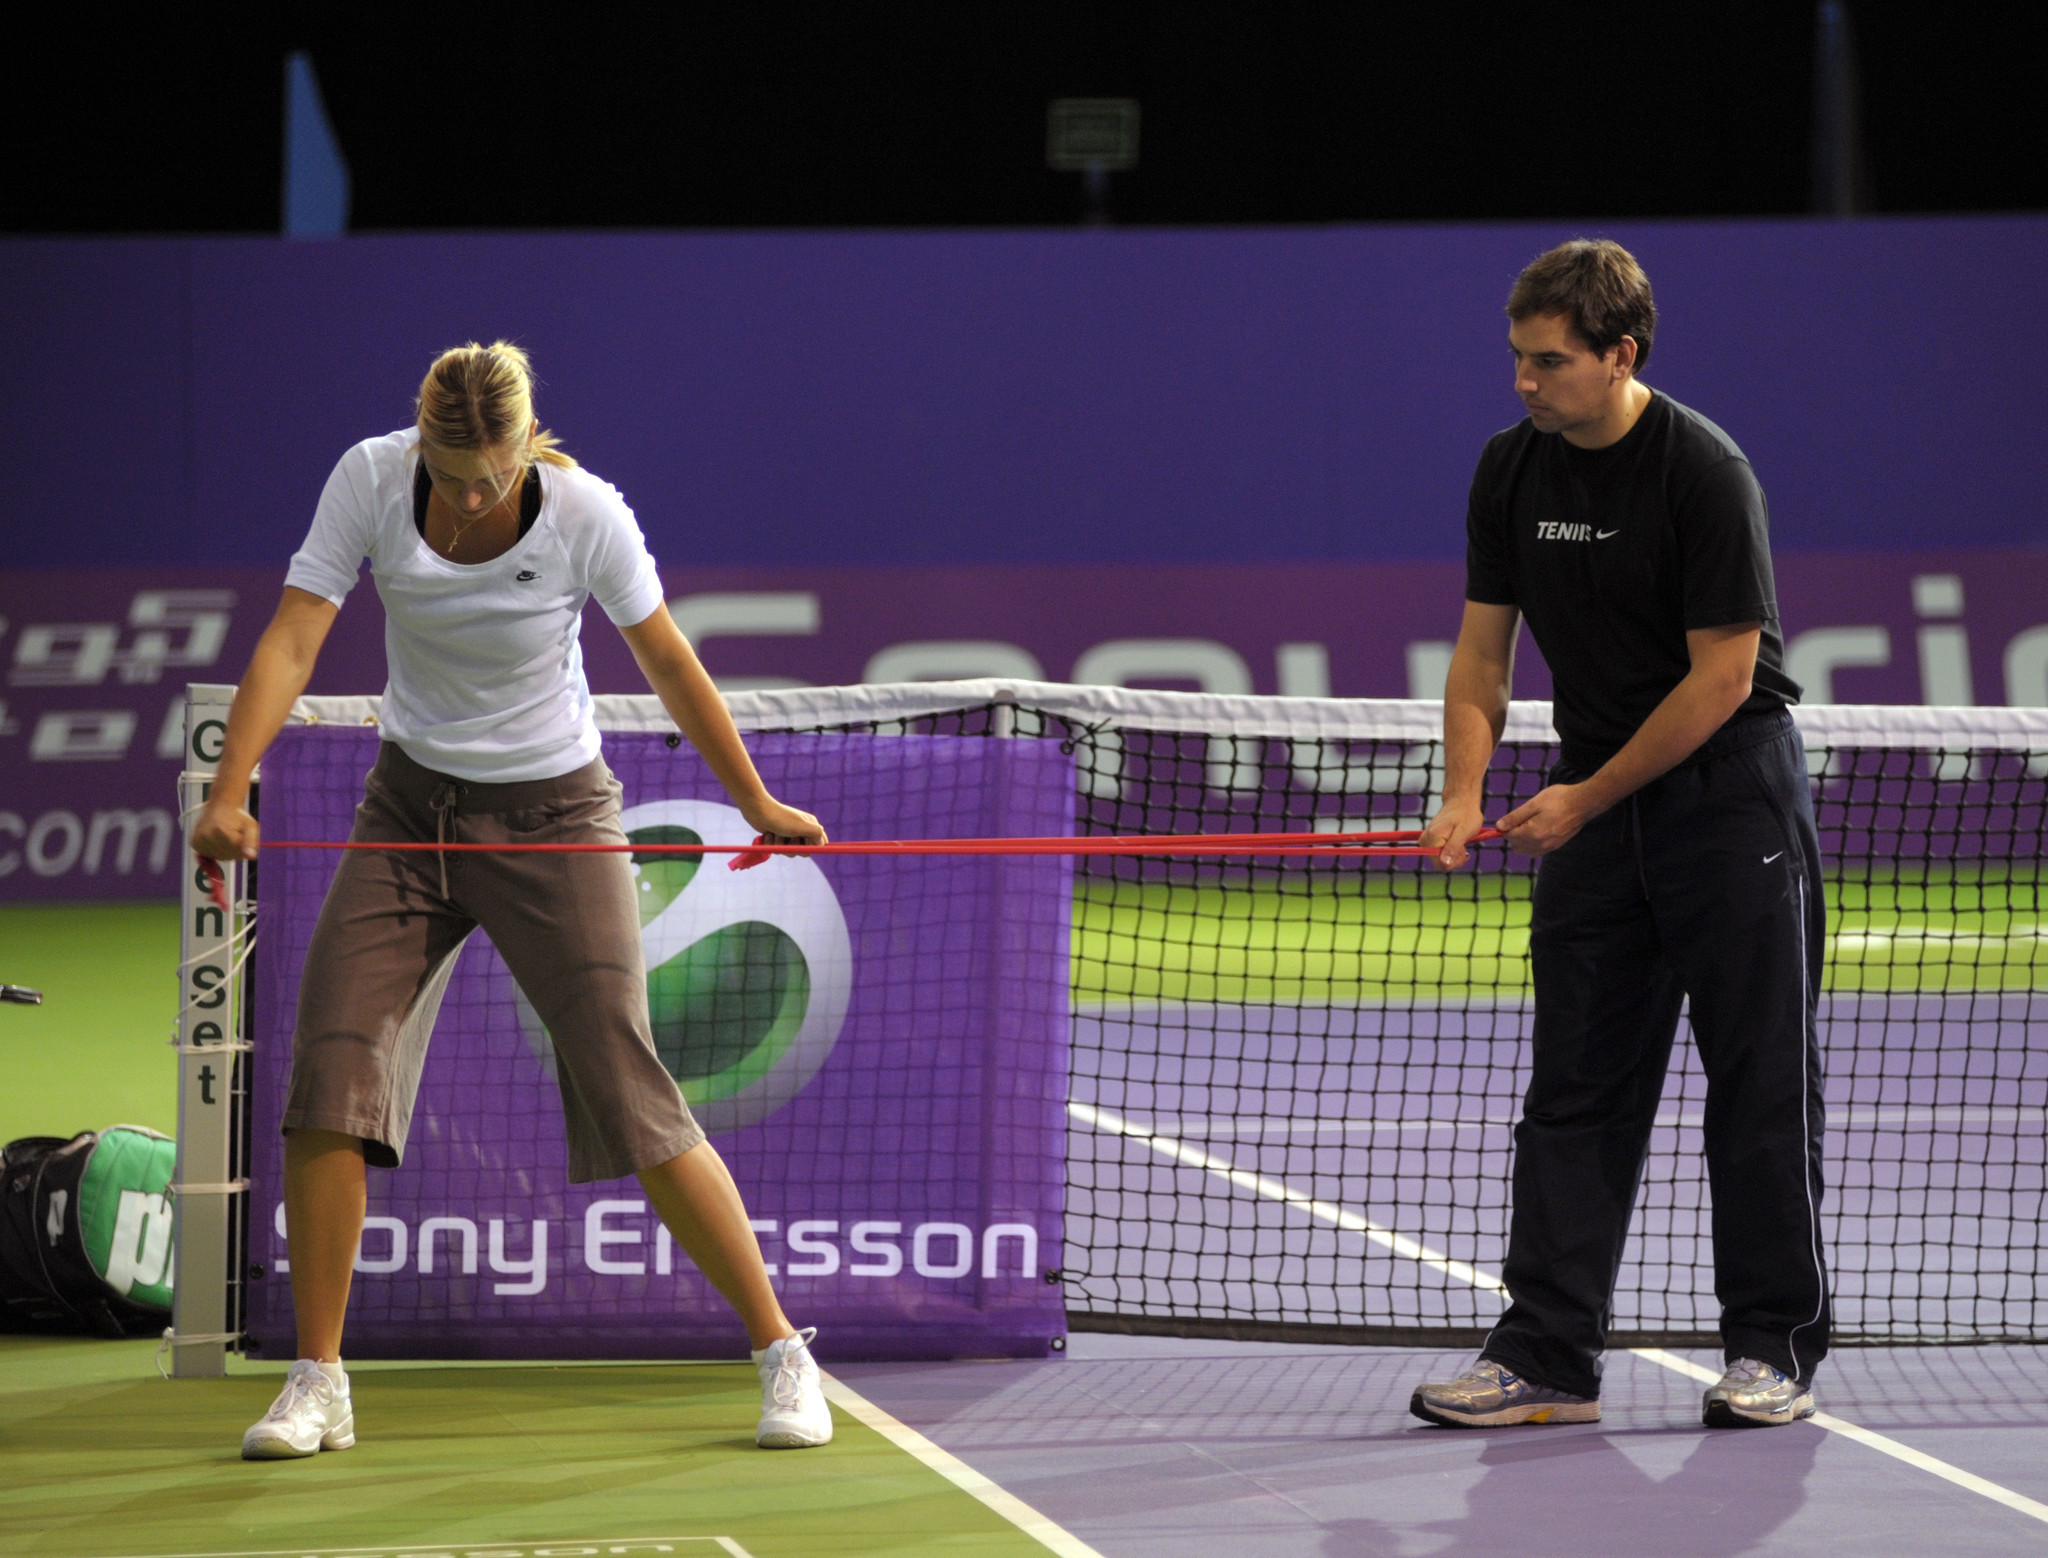 Reque works with tennis star Maria Sharapova on the ATP tour.